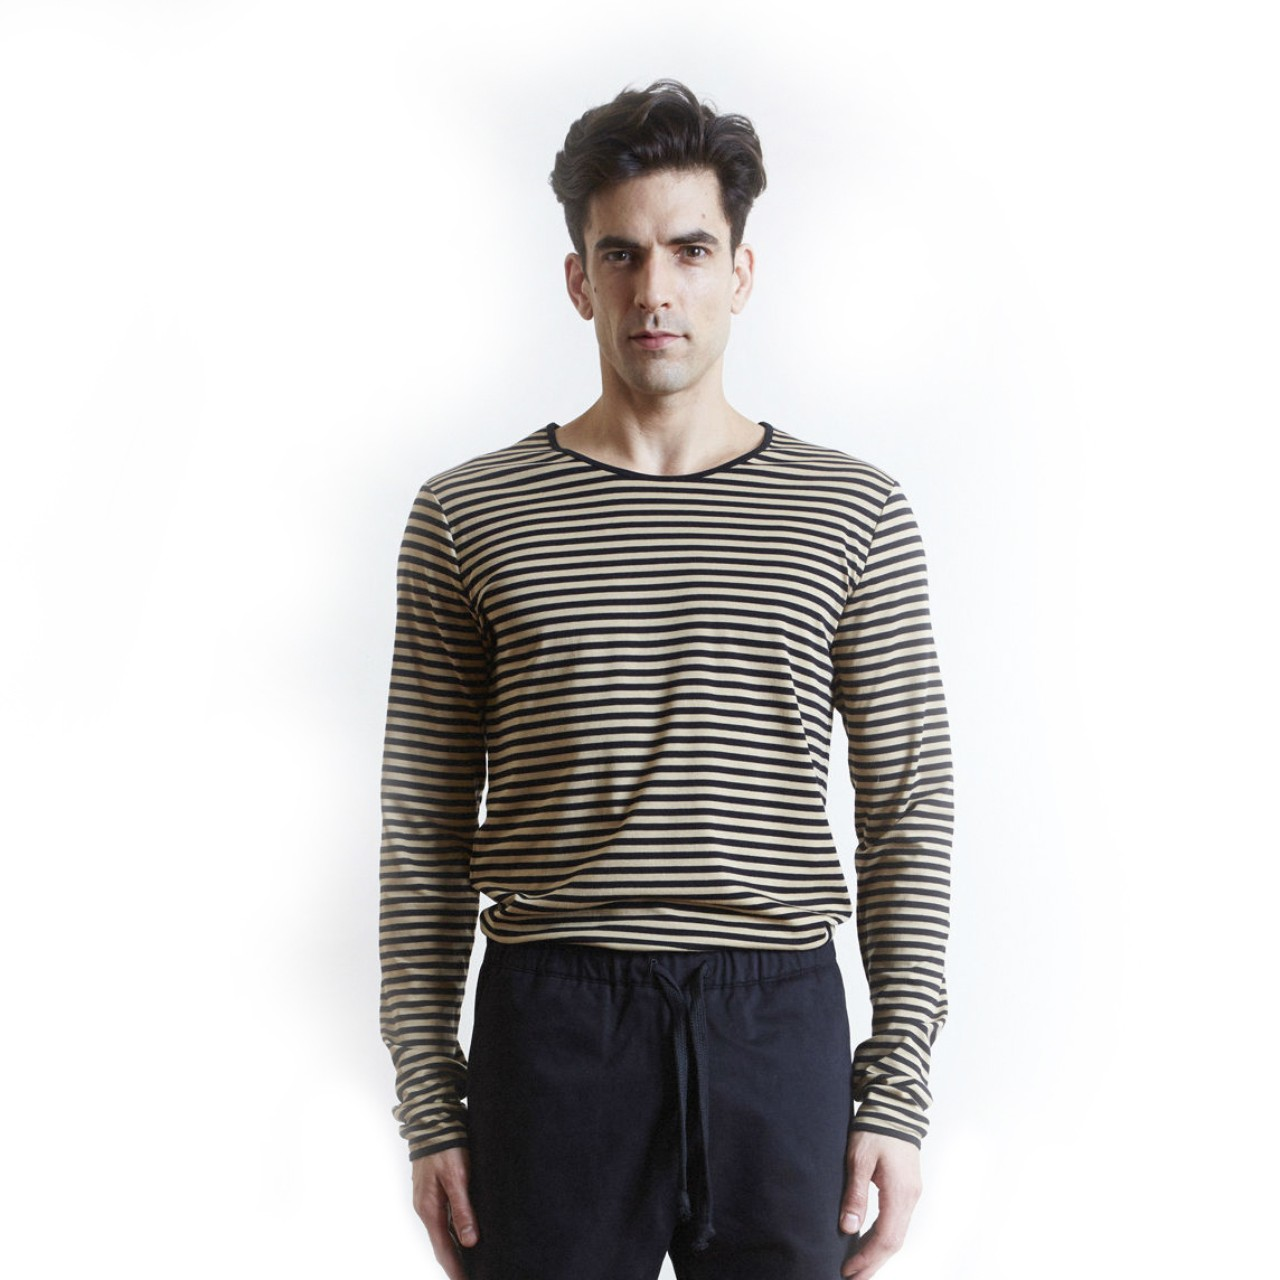 The White Briefs Wheat Stripe Camel Black Long Sleeve